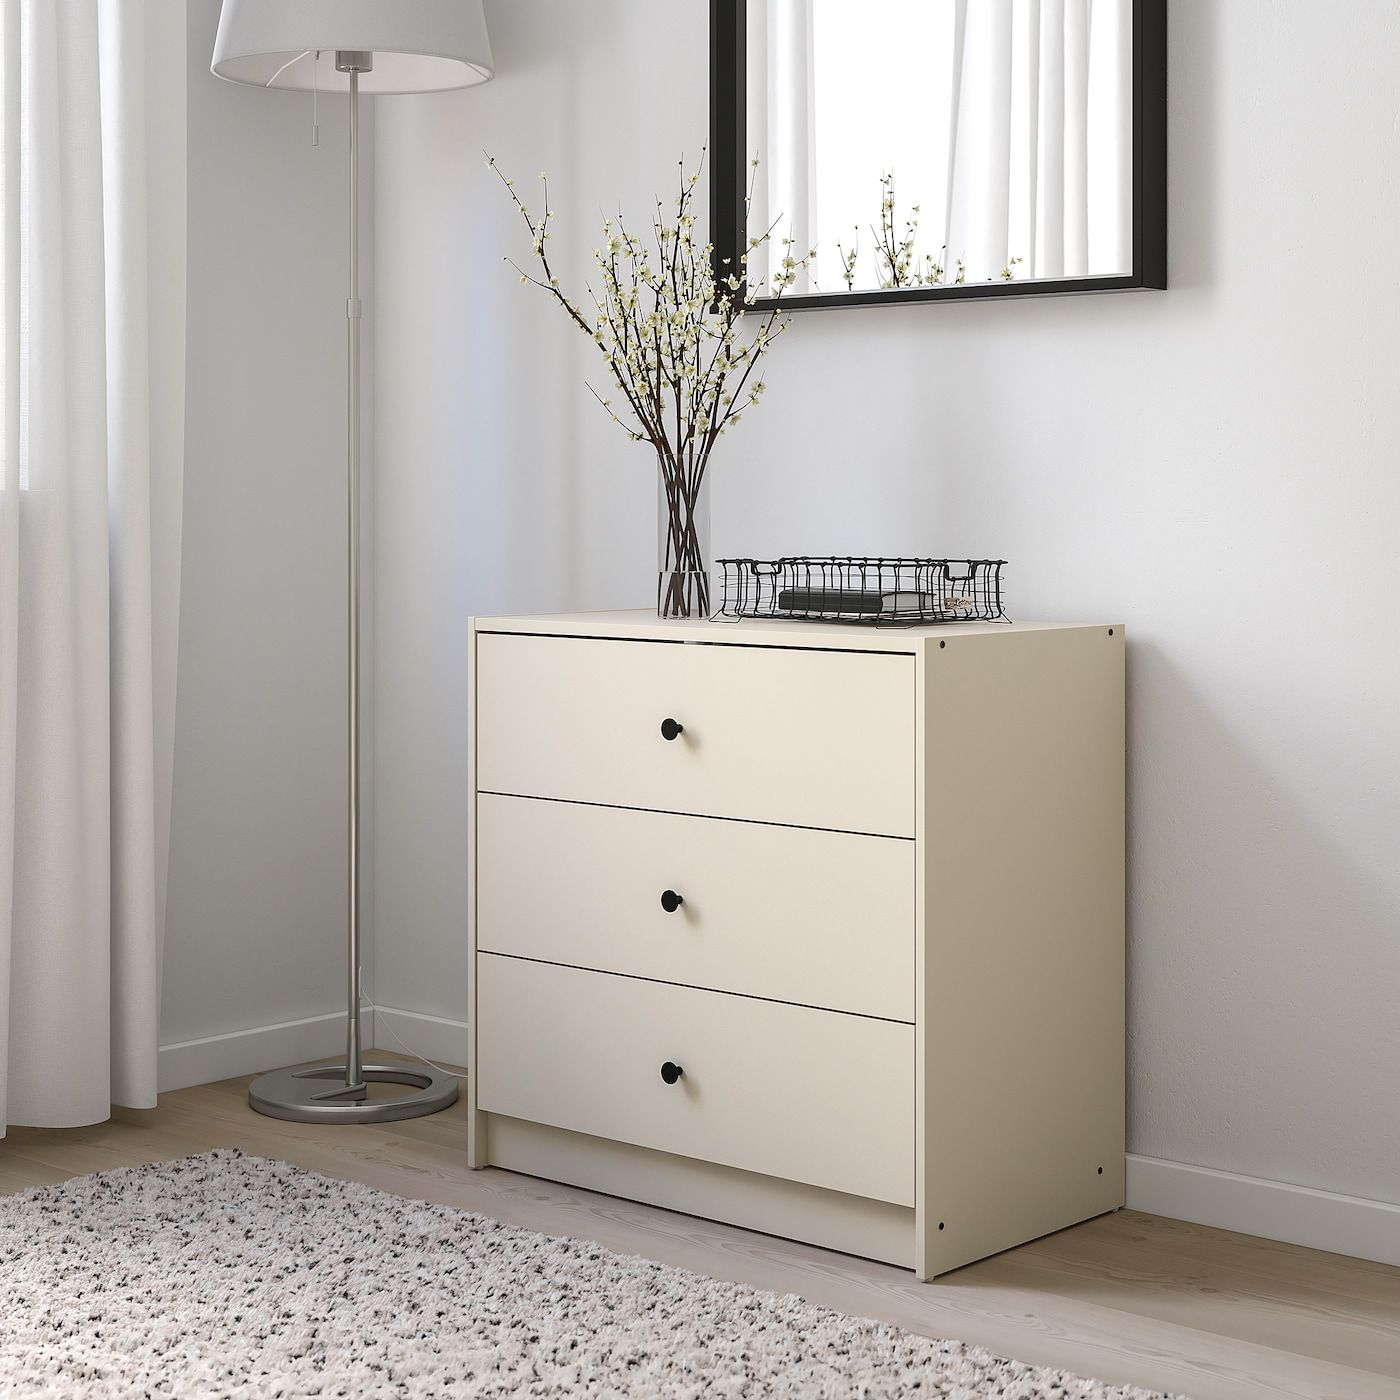 Products Ikea Chest Of Drawers Dresser Drawers Ikea [ 2000 x 2000 Pixel ]